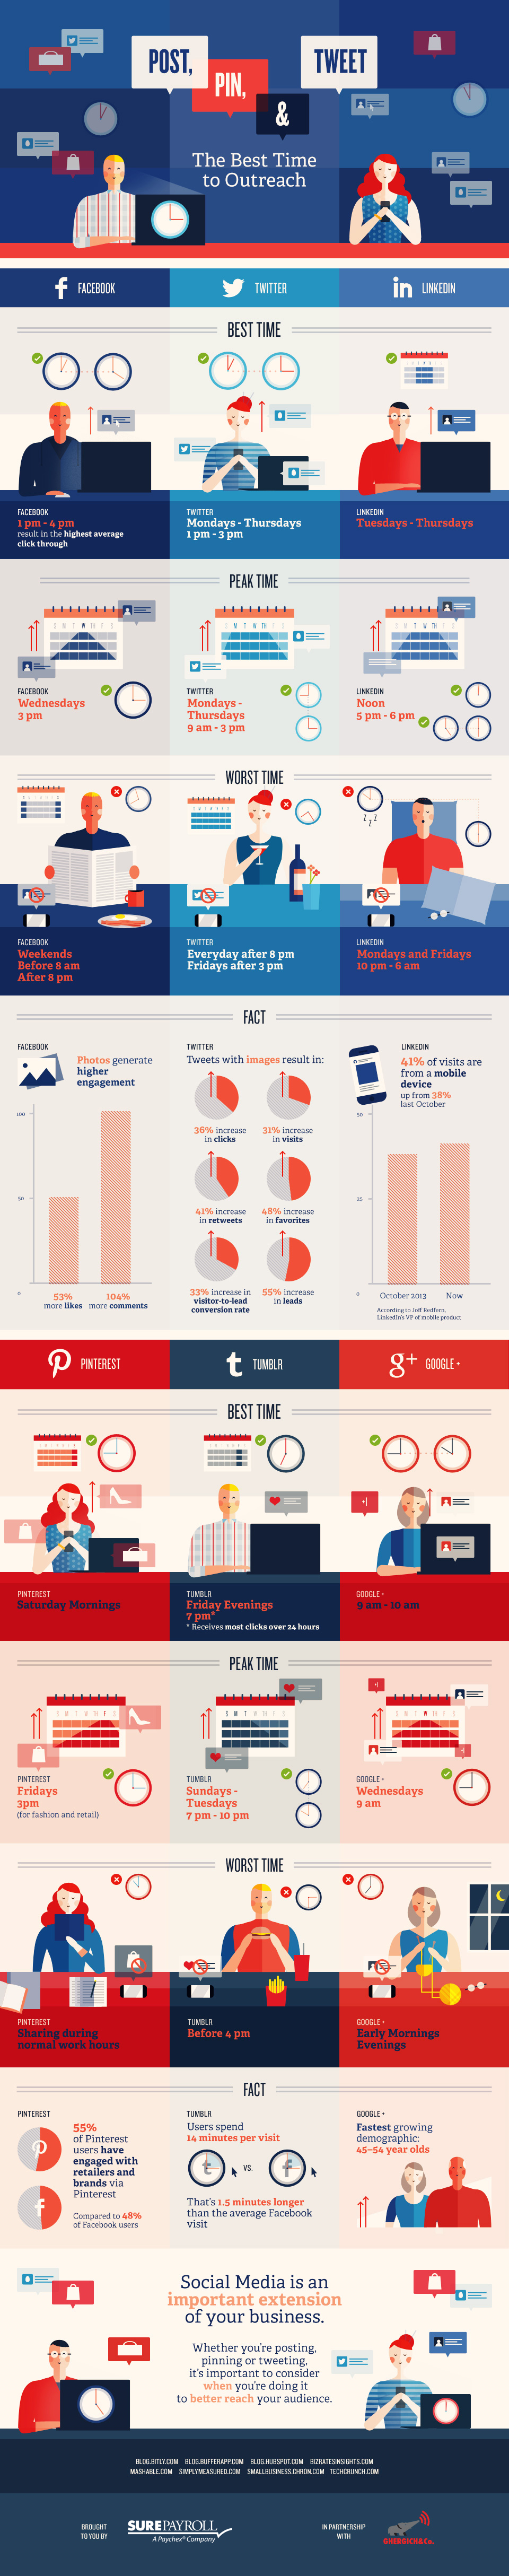 Post, Pin & Tweet Peak Time Infographic